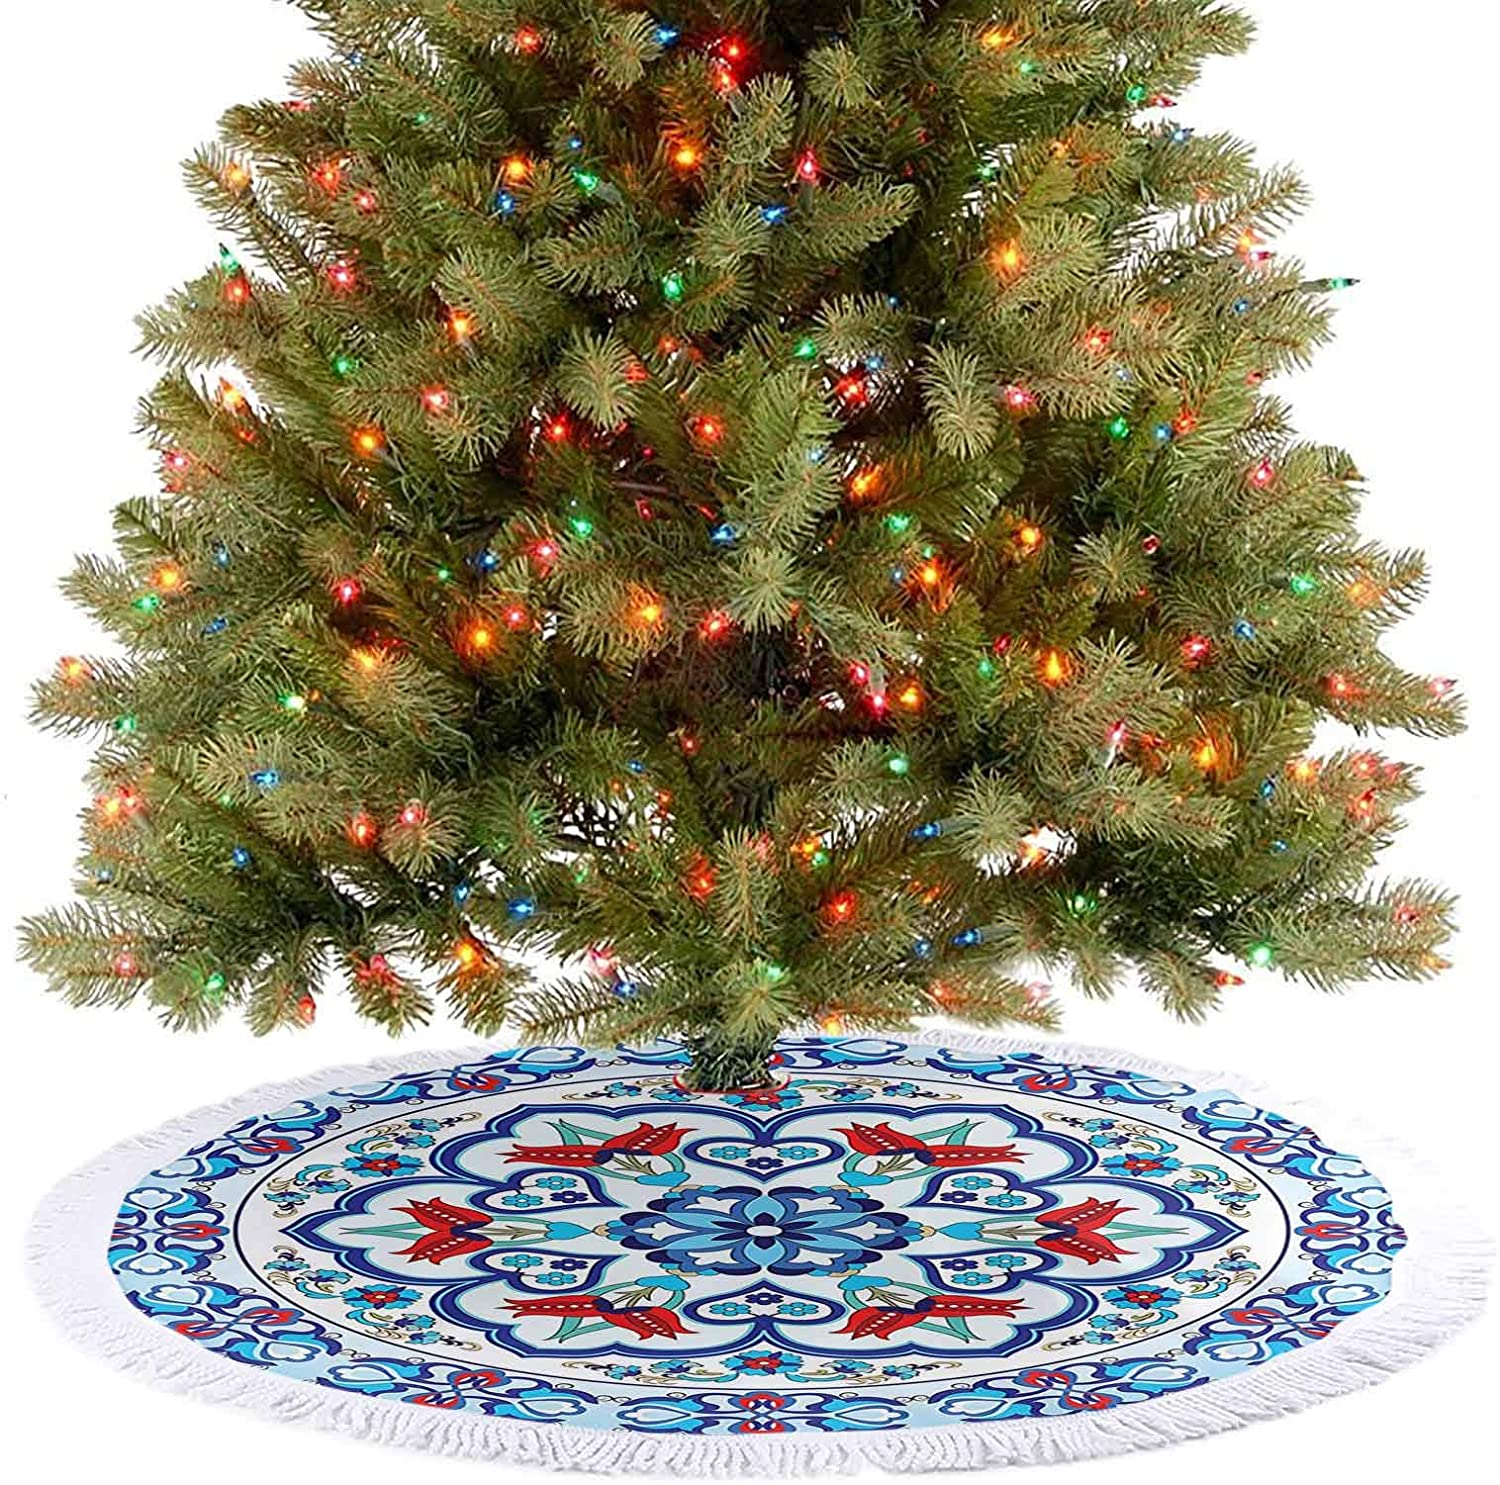 Xmas Tree Mat Ottoman Turkish Style Art with Tulip Period Ceramic Floral Art Elements European Touch Christmas Decorations for Xmas New Year Holiday Party Home - 48 Inch